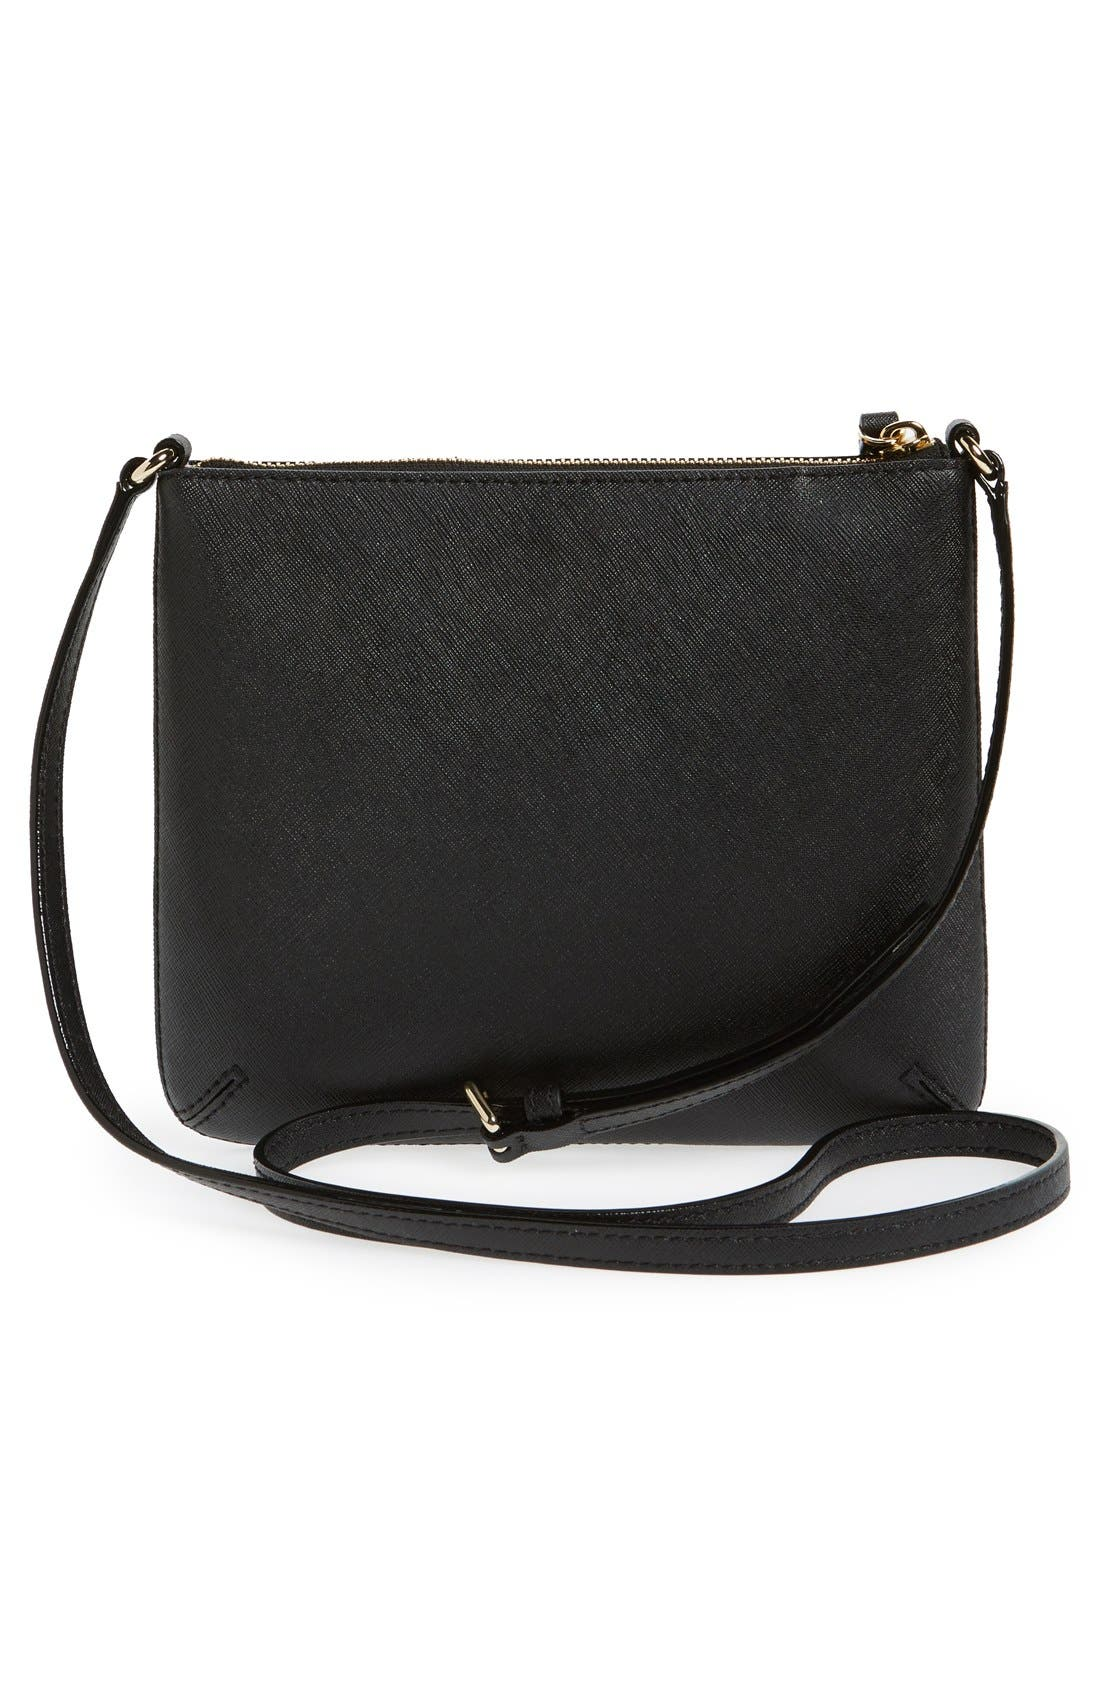 Alternate Image 3  - kate spade new york 'tenley' saffiano leather crossbody bag